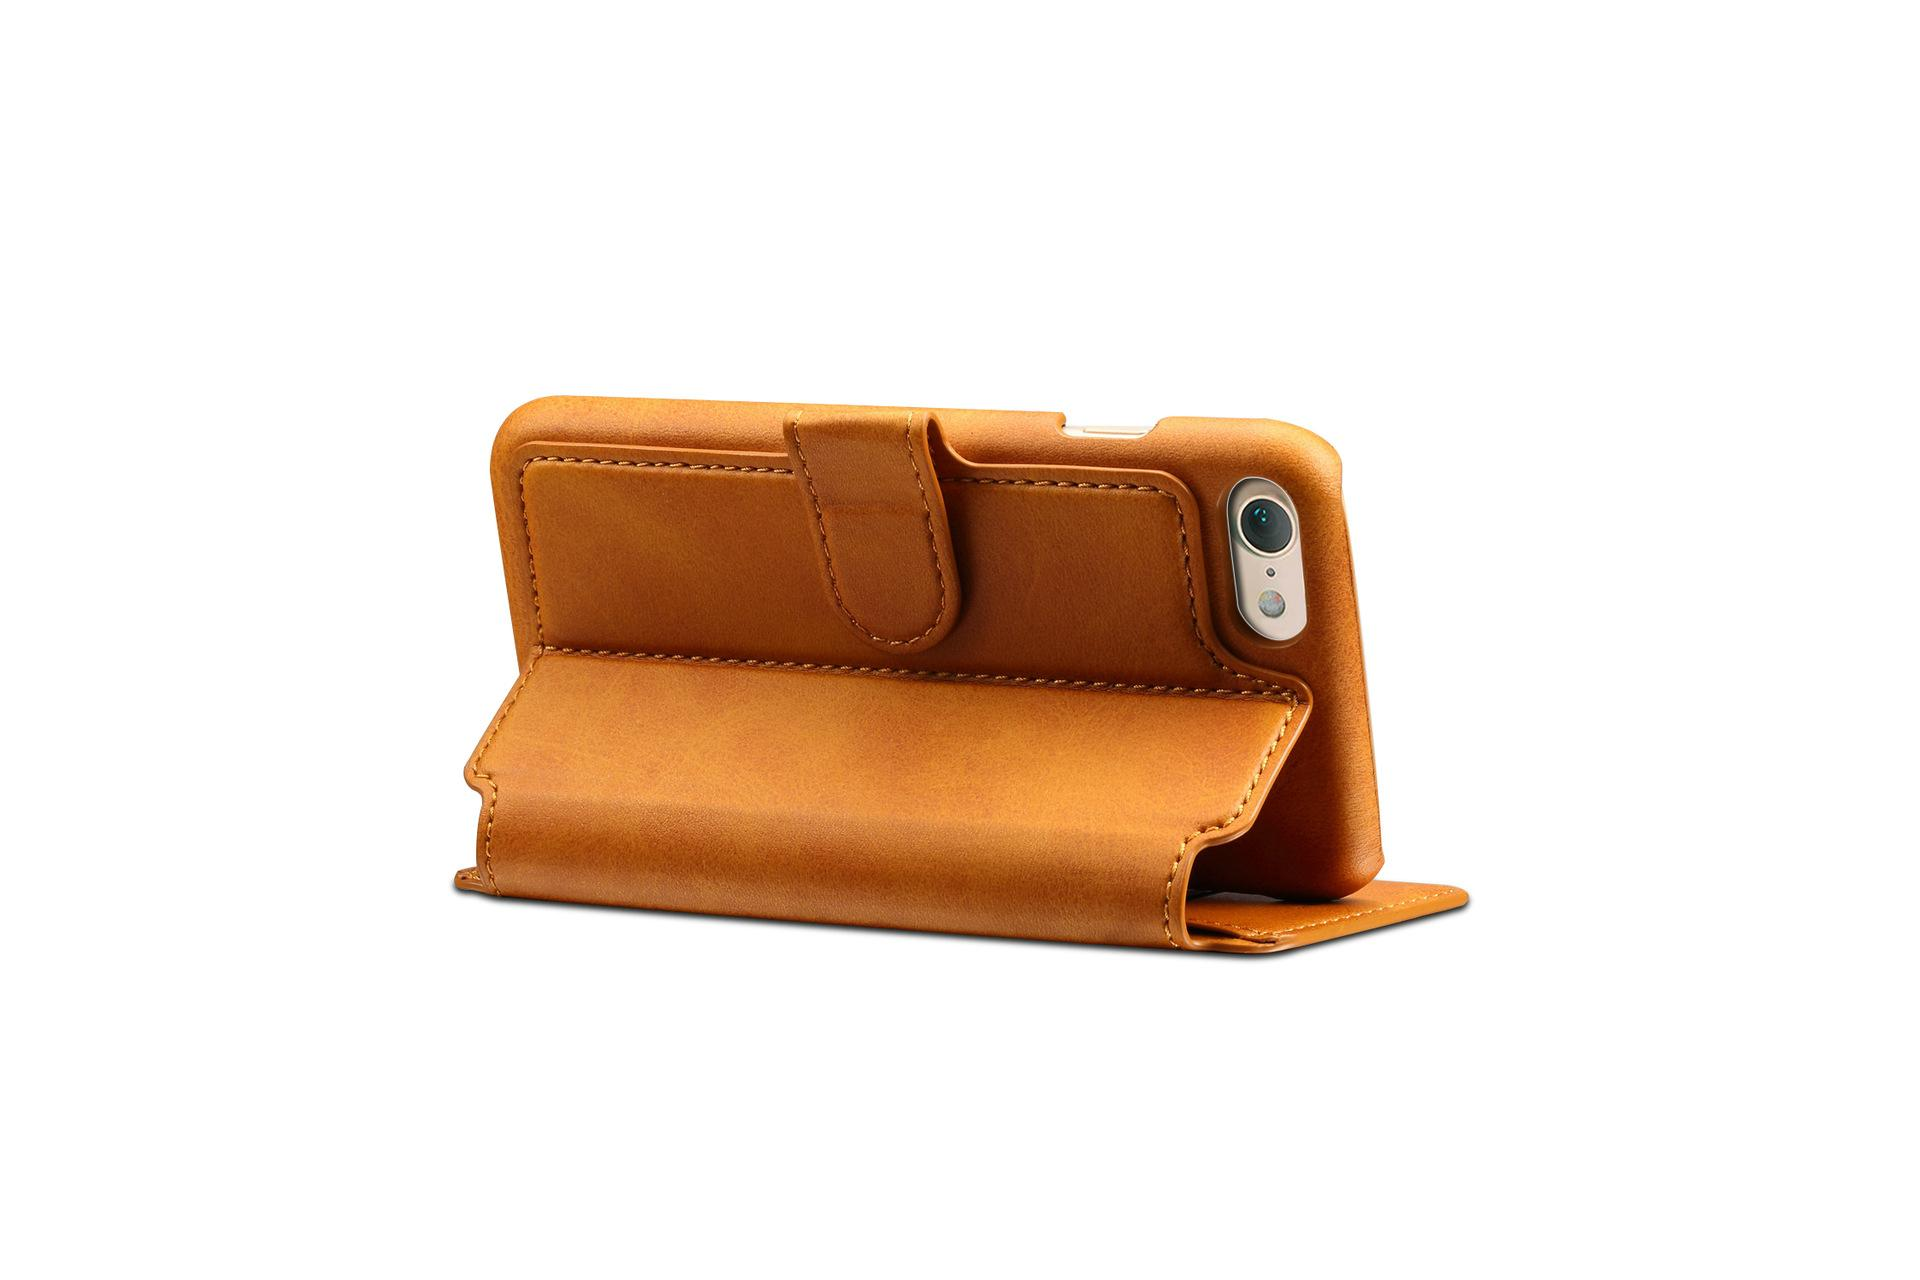 Apple iPhone 7 Flip Cover Stand Wallet Case 11